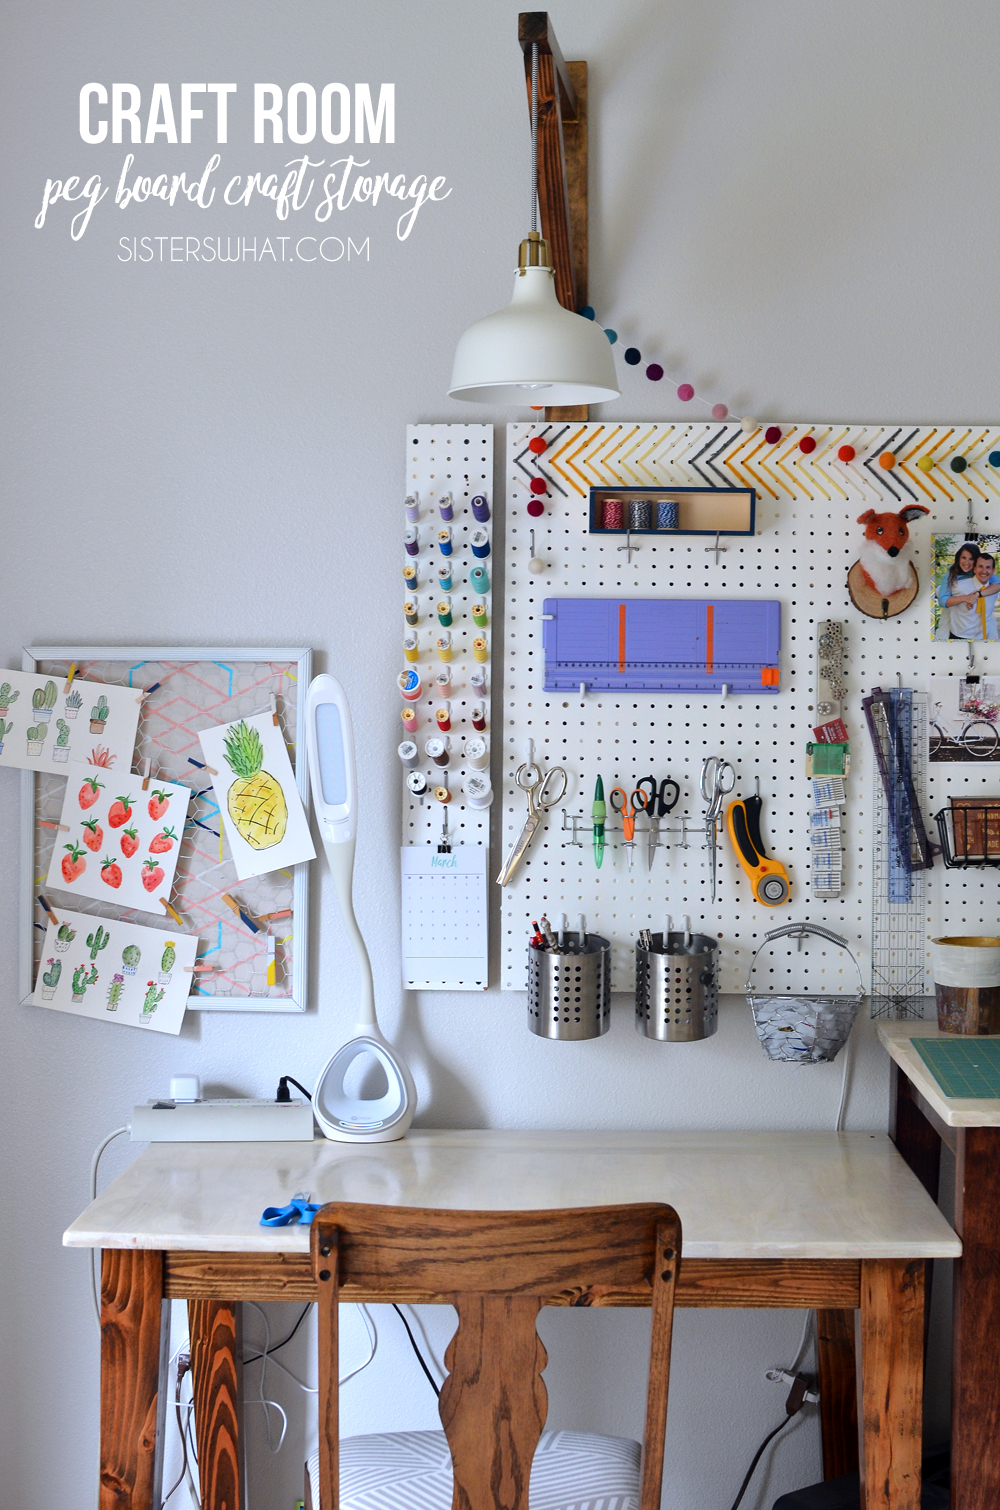 Pegboard for craft storage for craft room space